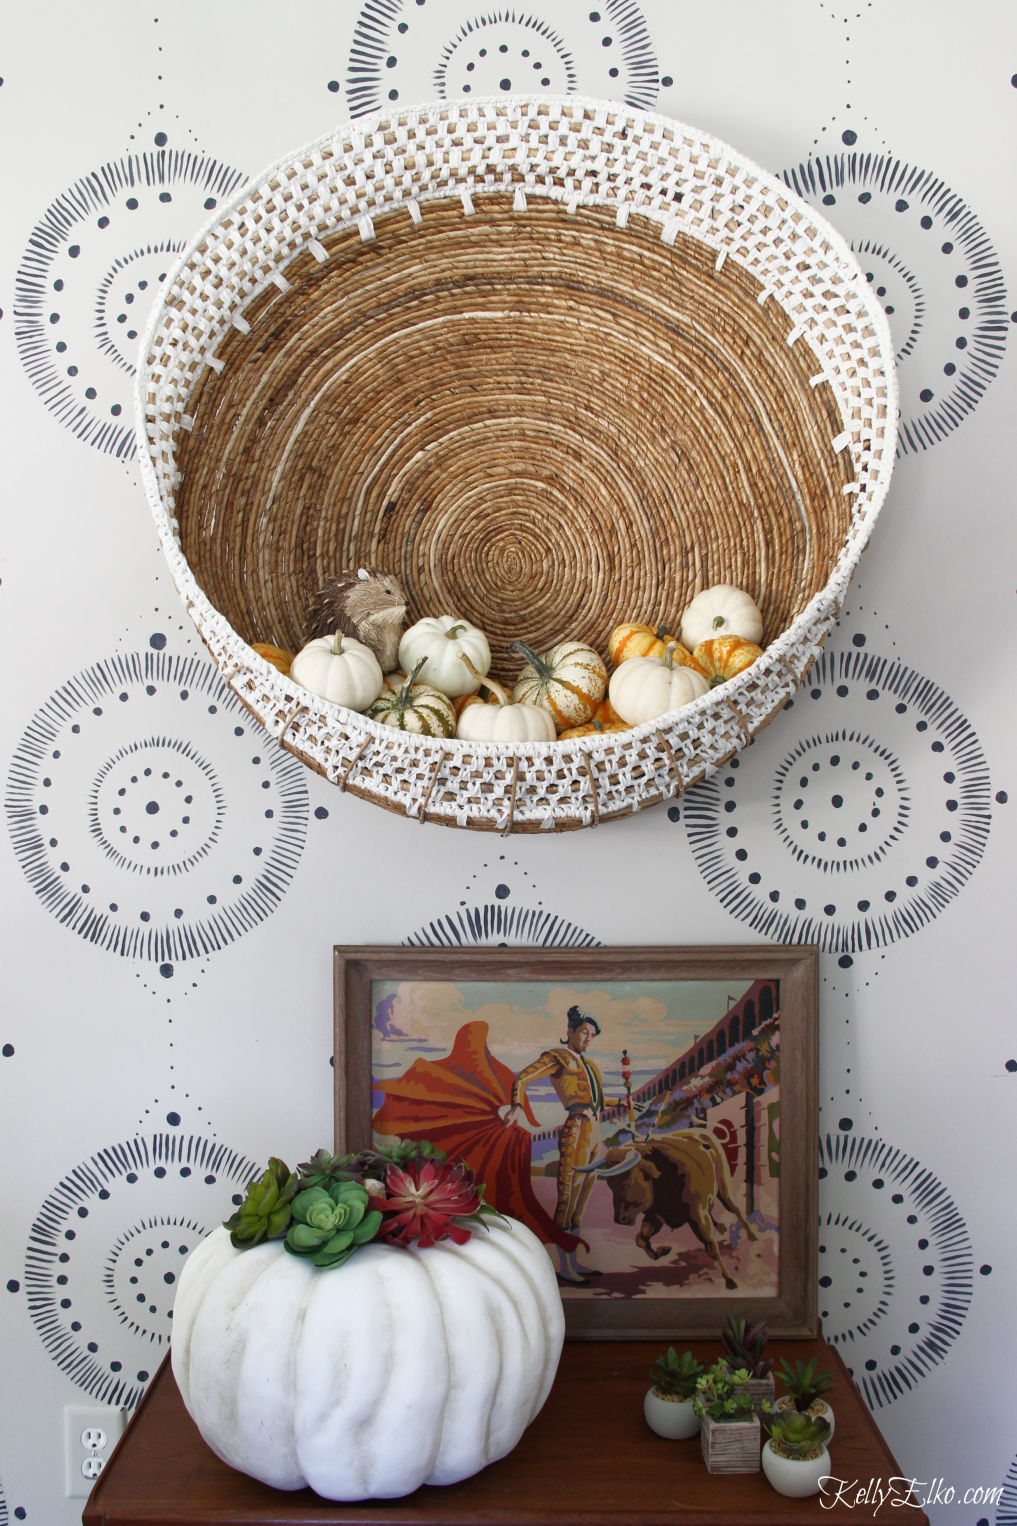 Bar Cart Styling - three different looks! Love the huge wall basket filled with pumpkins for fall and the vintage finds kellyelko.com #barcart #bohodecor #eclecticdecor #homedecor #falldecor #falldecorating #pumpkins #vintagdecor